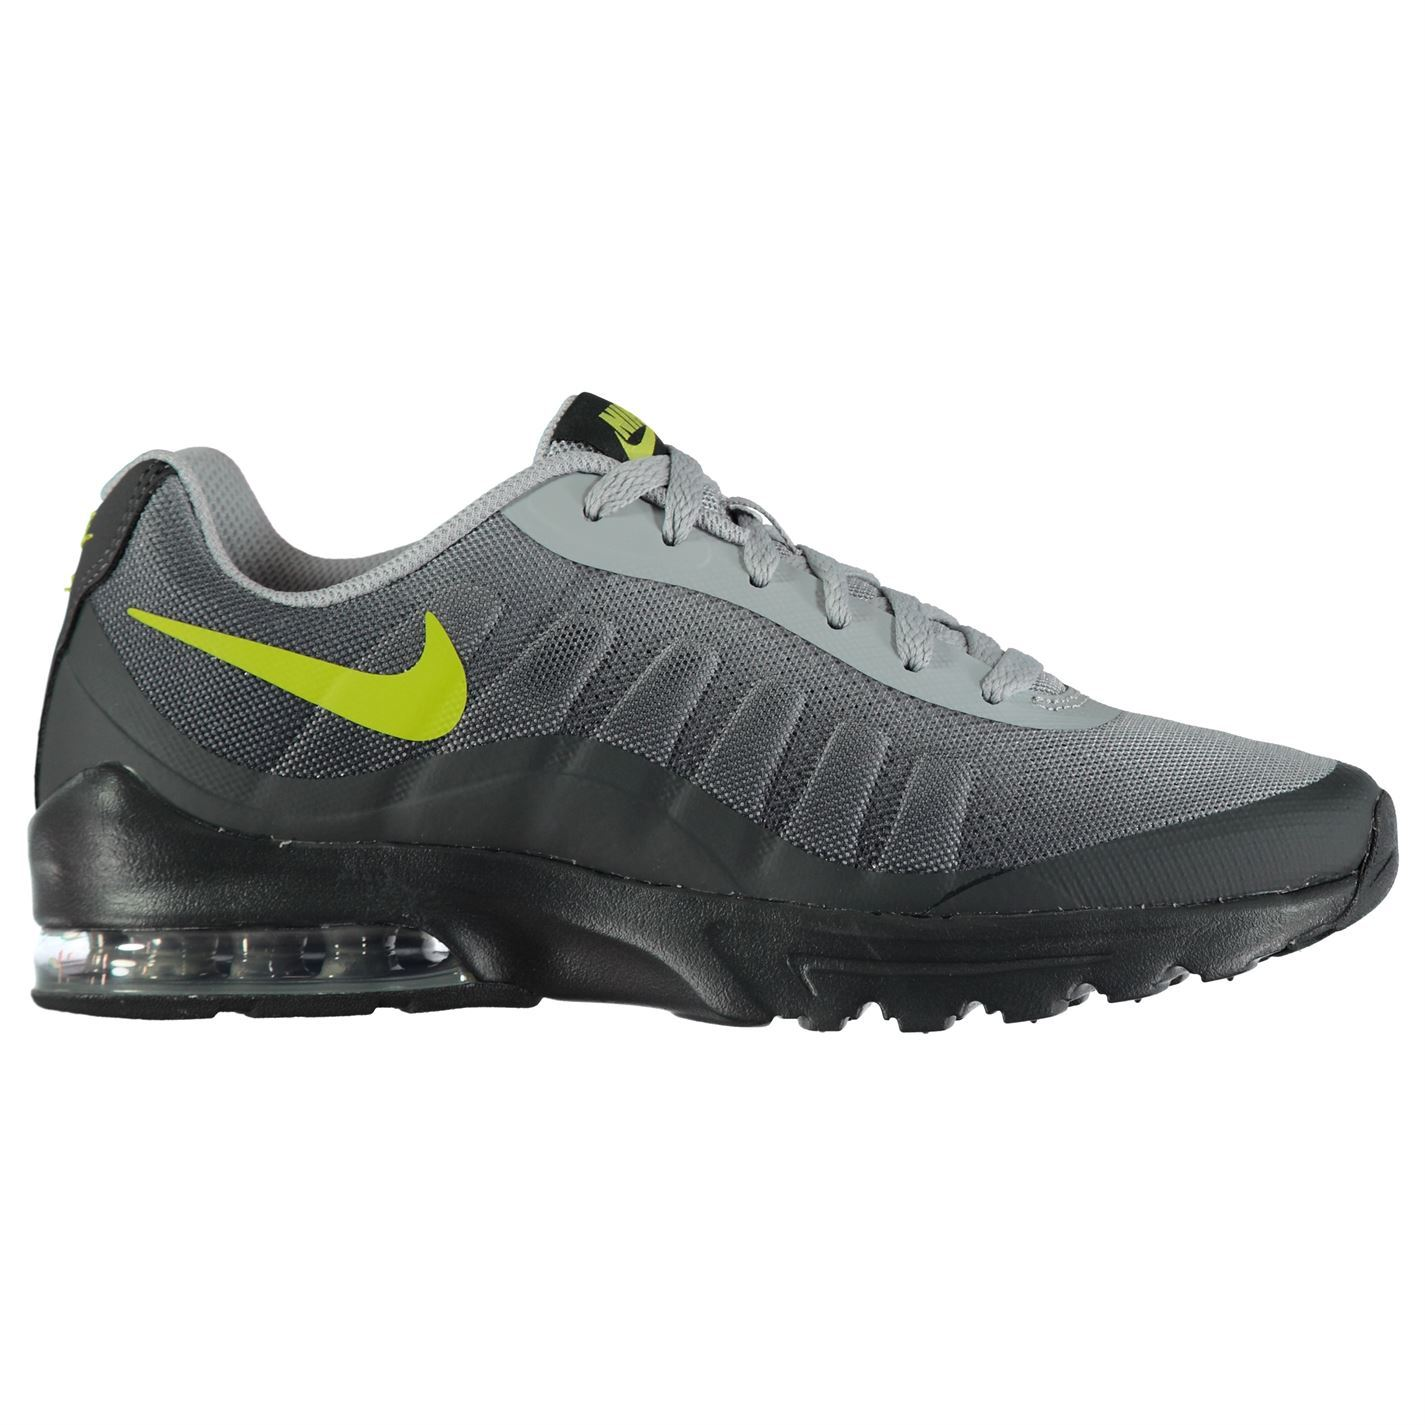 half off 7c6d8 104cf ... Nike Air Max Invigor Print Trainers Mens GreyVolt Athletic Sneakers  Shoes ...